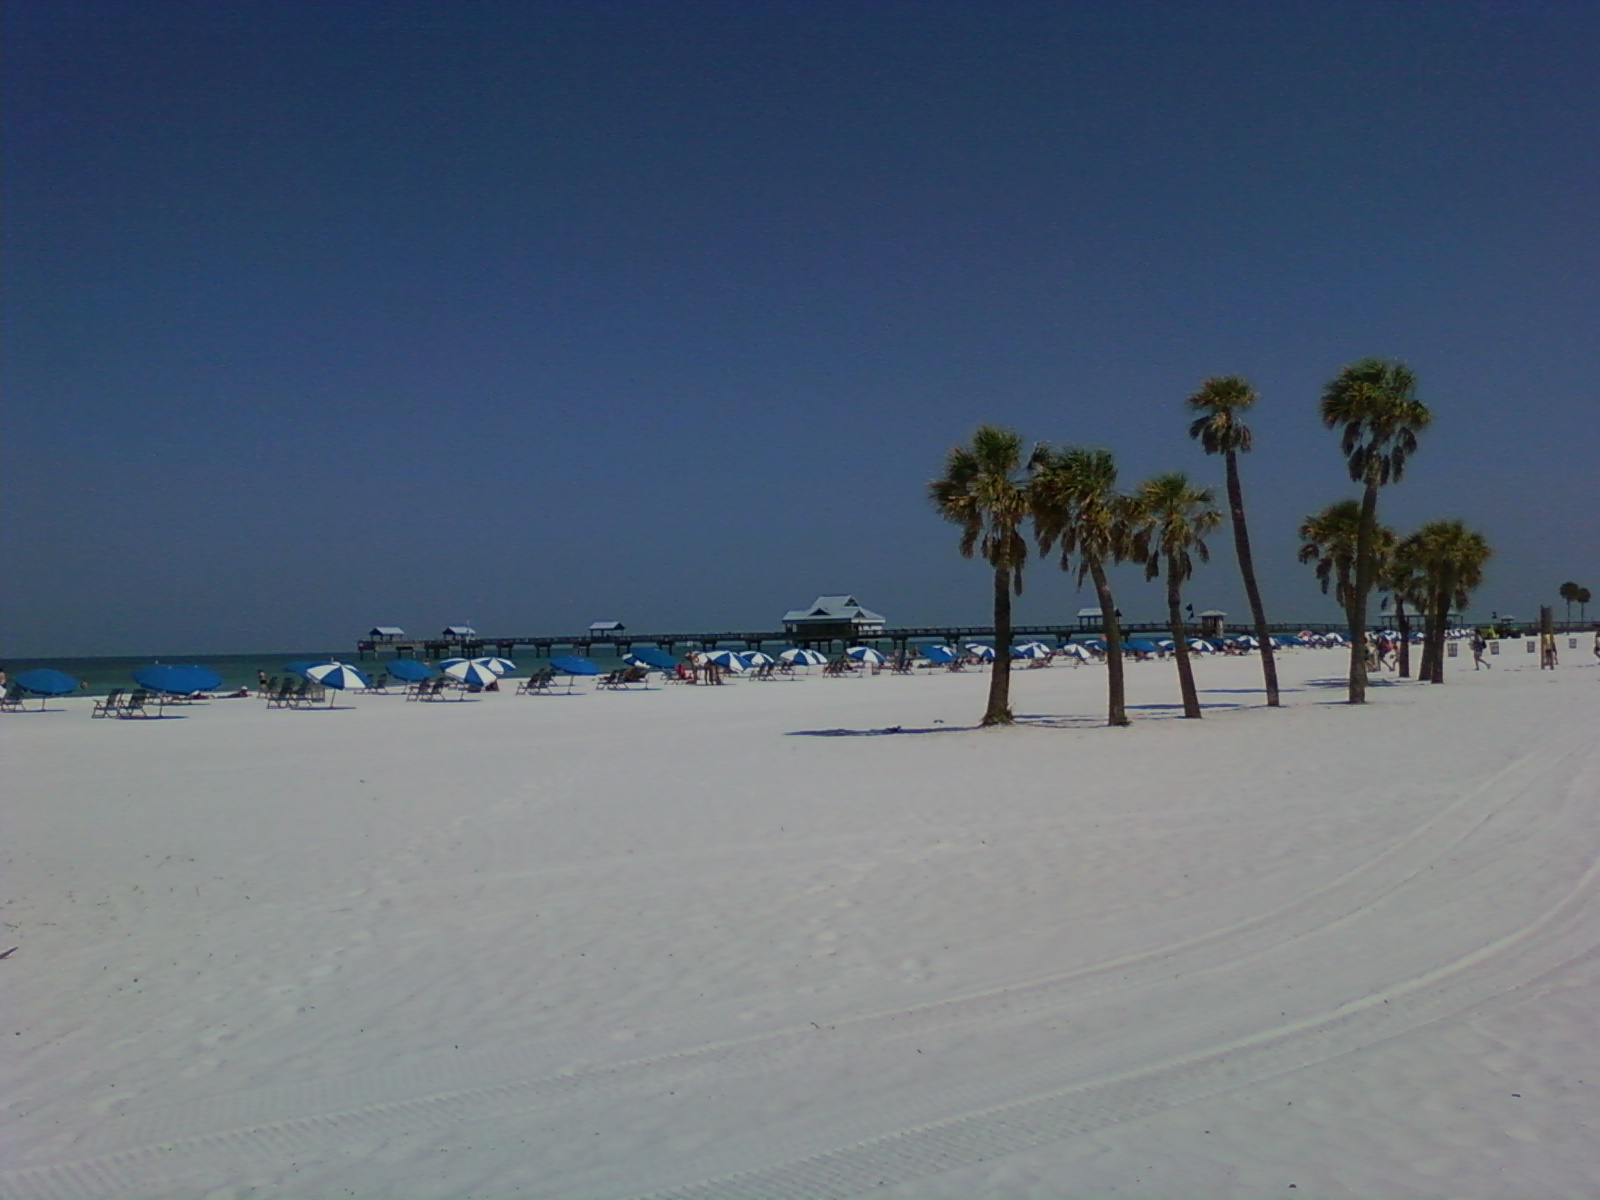 clearwater beach dating Speed dating in clearwater beach on ypcom see reviews, photos, directions, phone numbers and more for the best dating service in clearwater beach, fl.